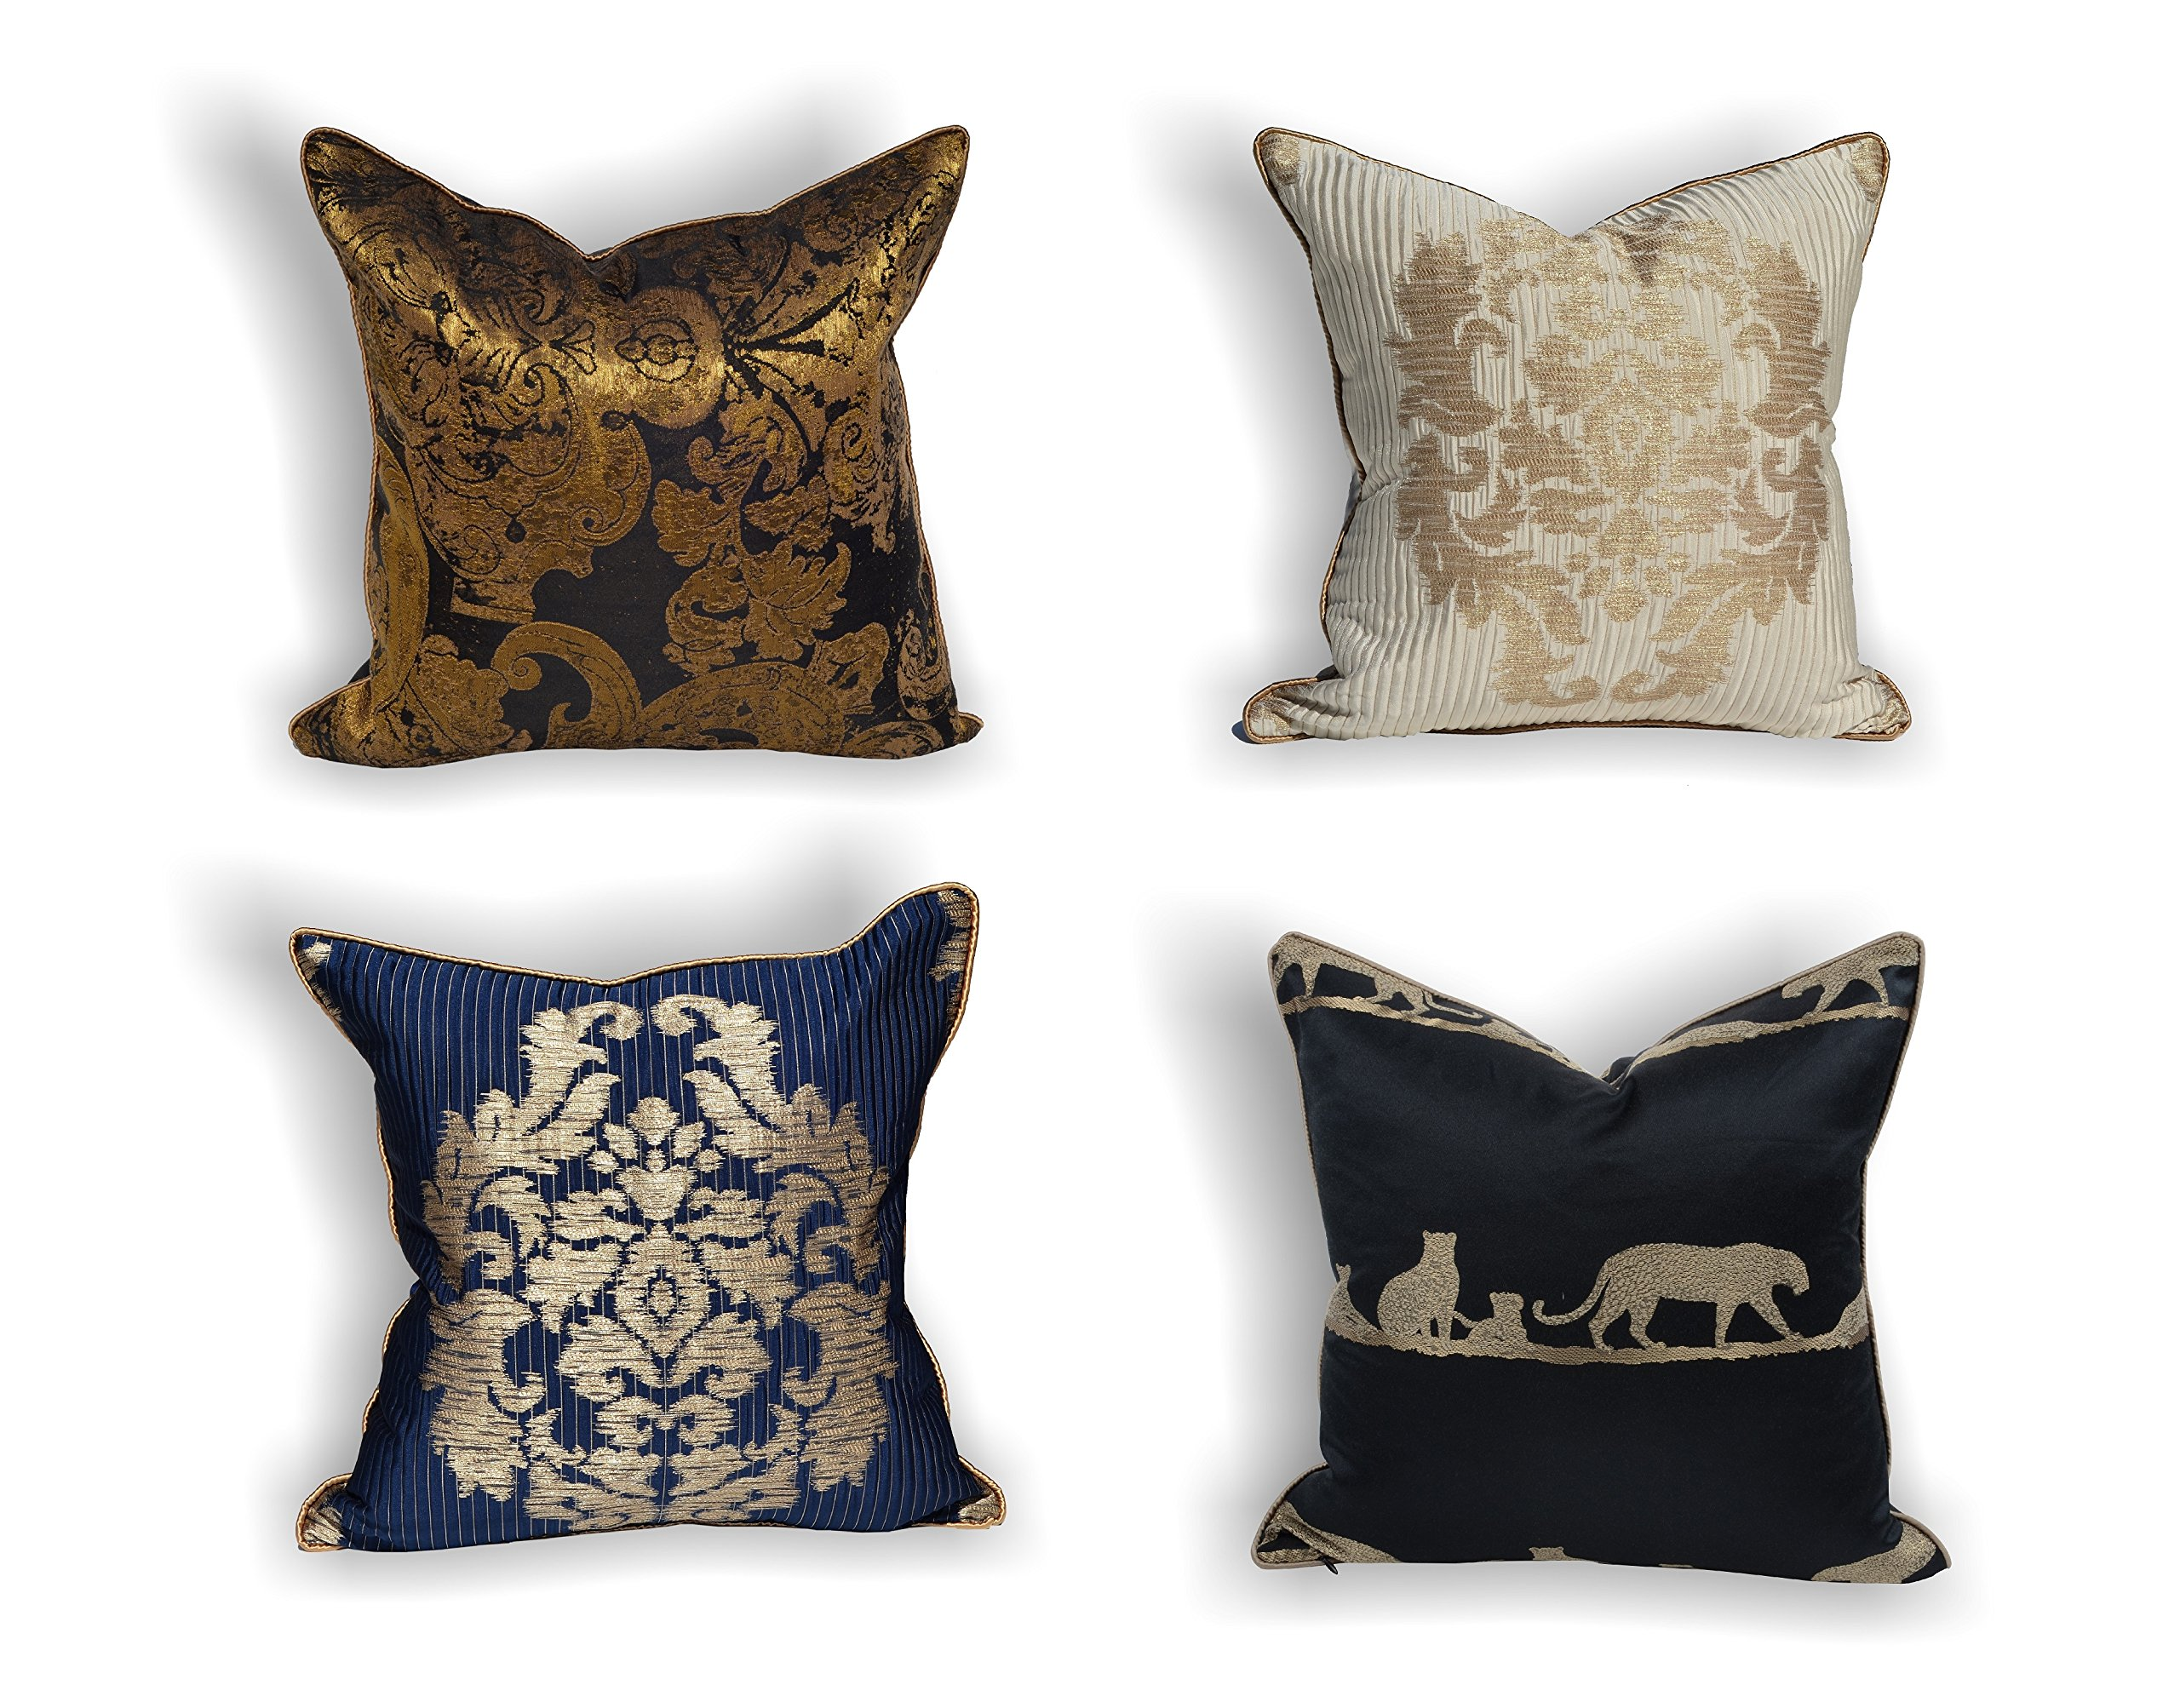 Throw Pillow Cushion Cover Luxury Decorative 18x18 inches (White Gold)